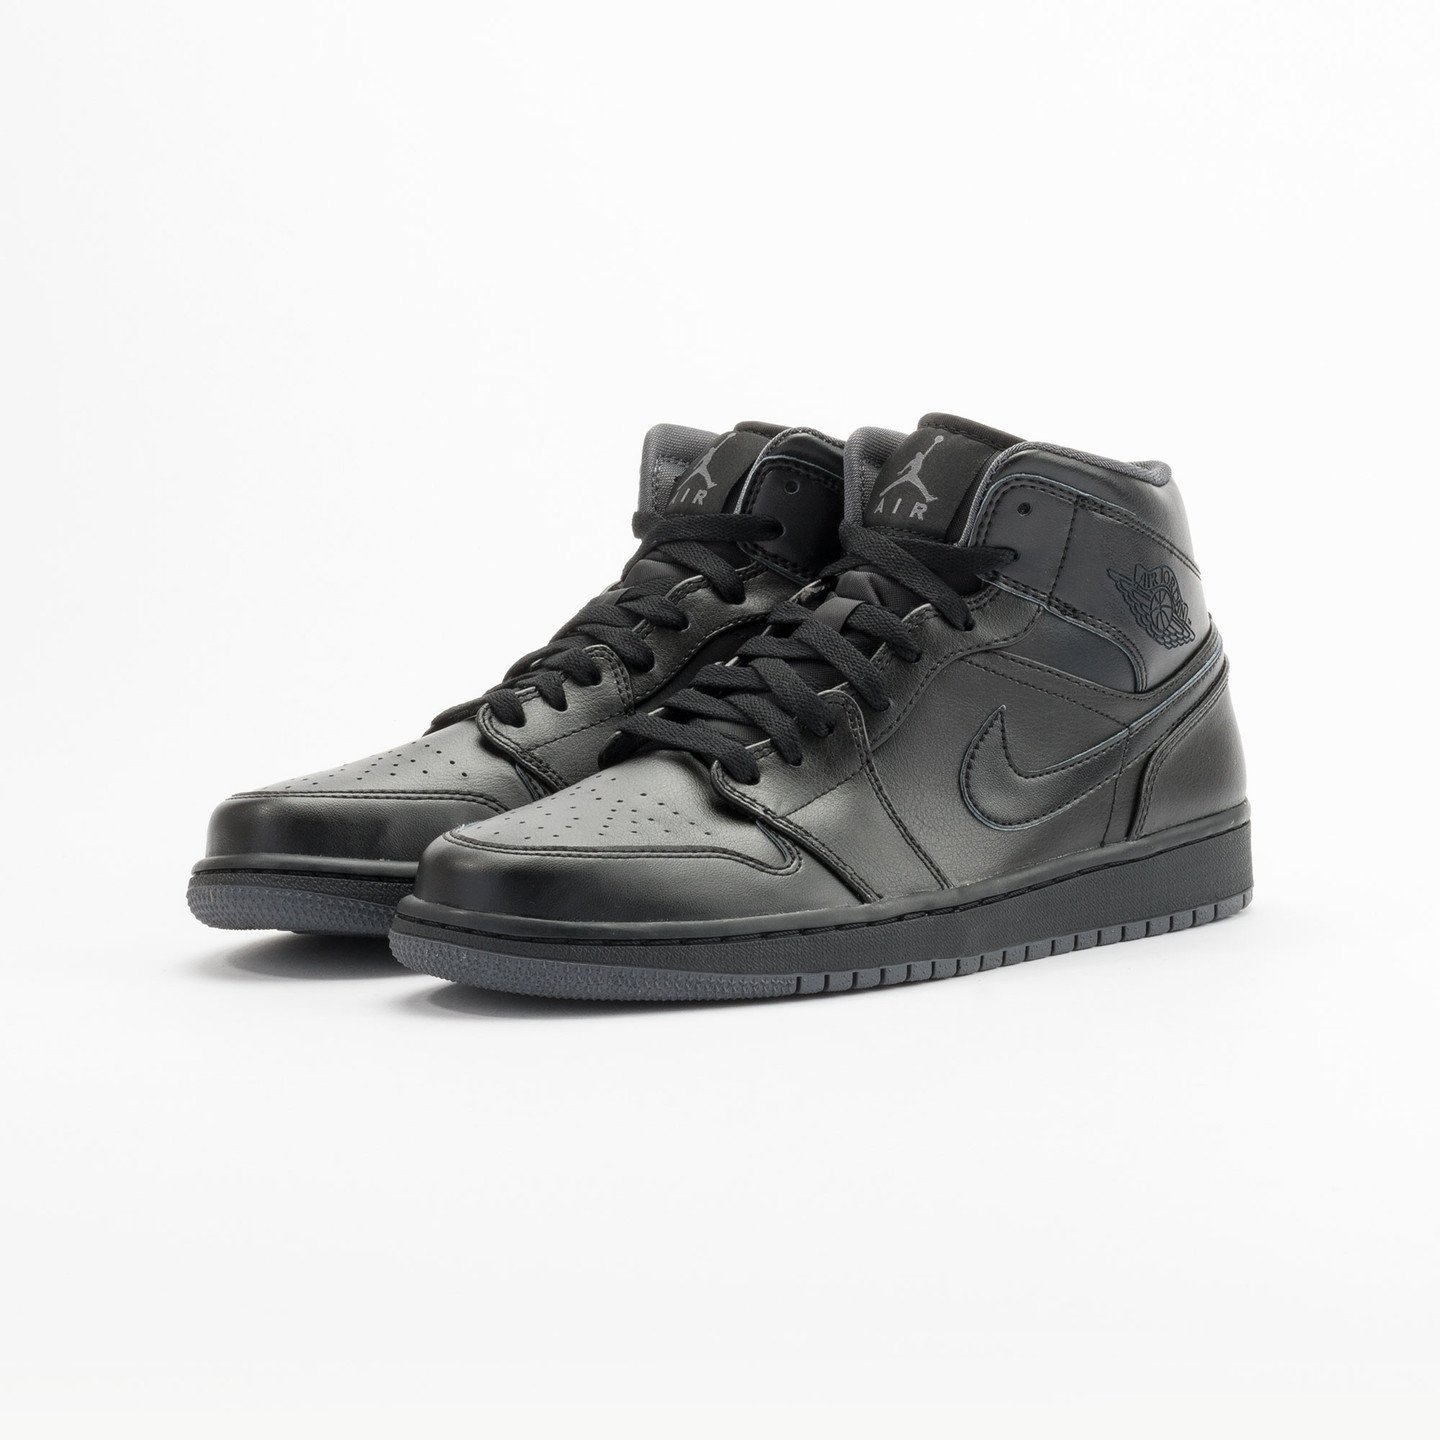 Nike Air Jordan 1 Mid Black / Dark Grey 554724-021-42